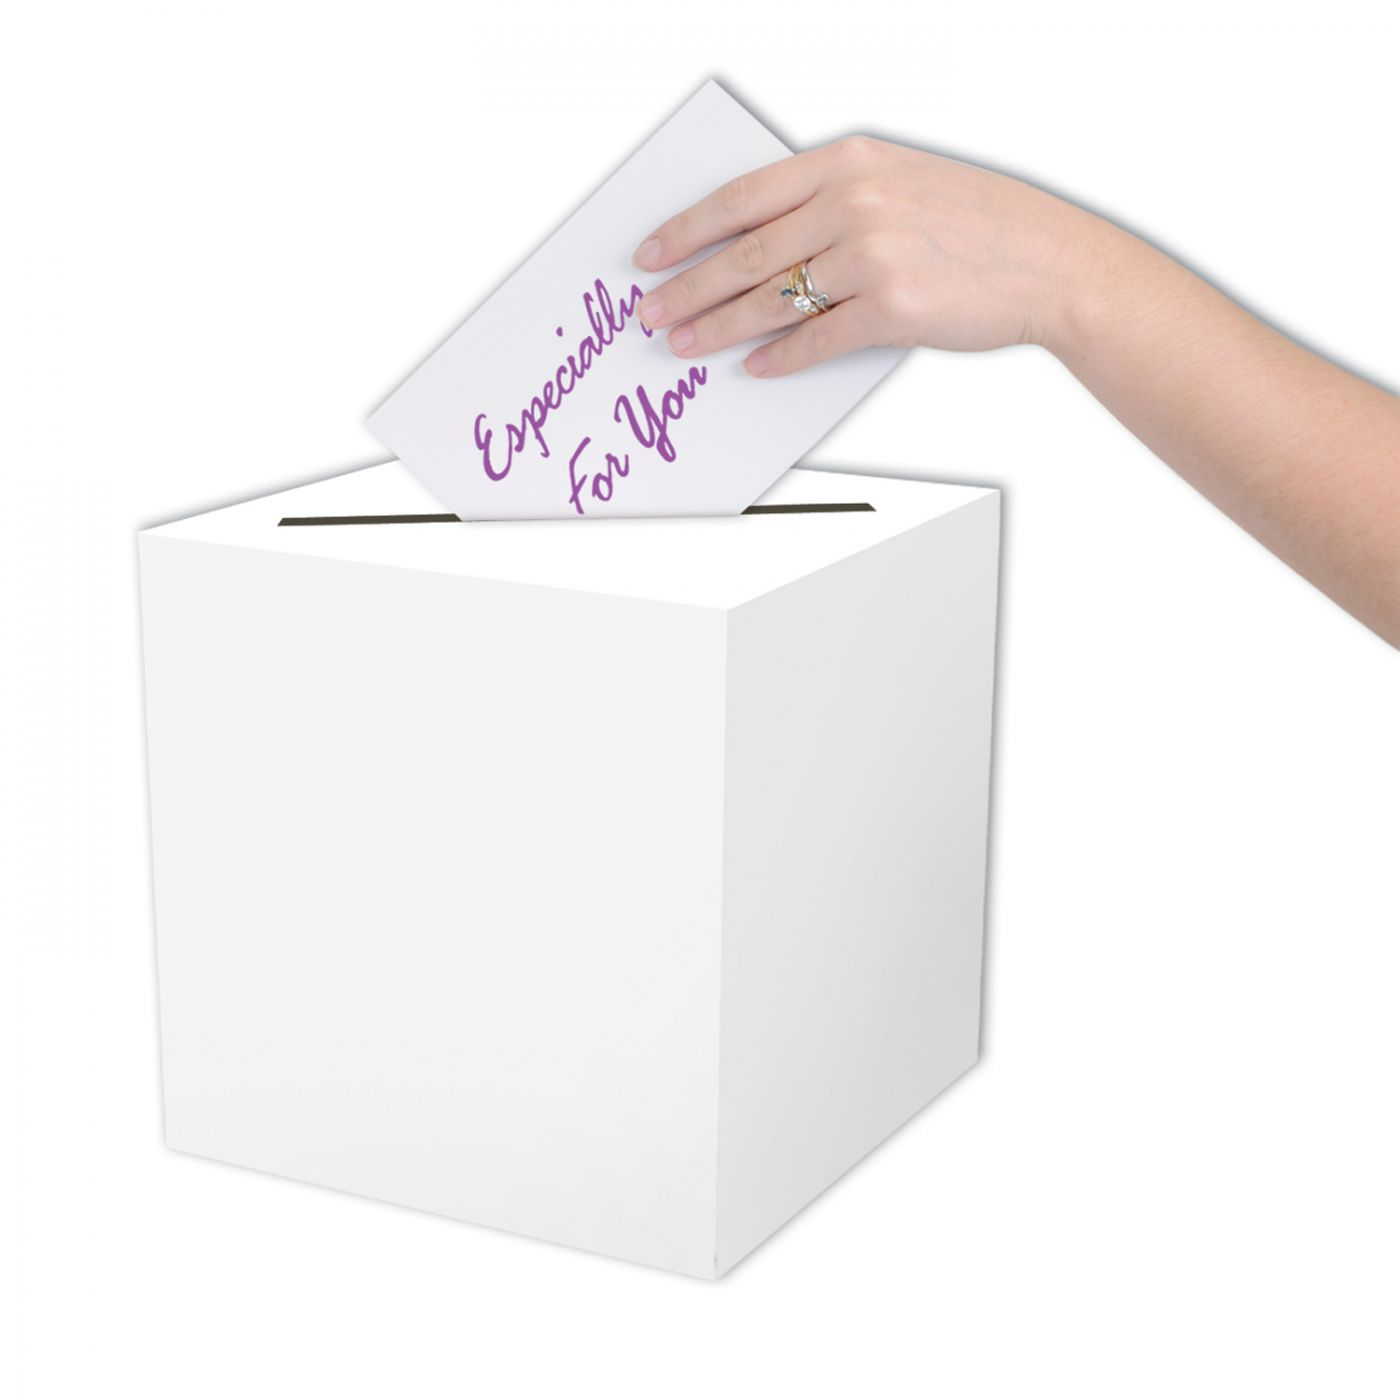 All-Purpose Card Box (6) image